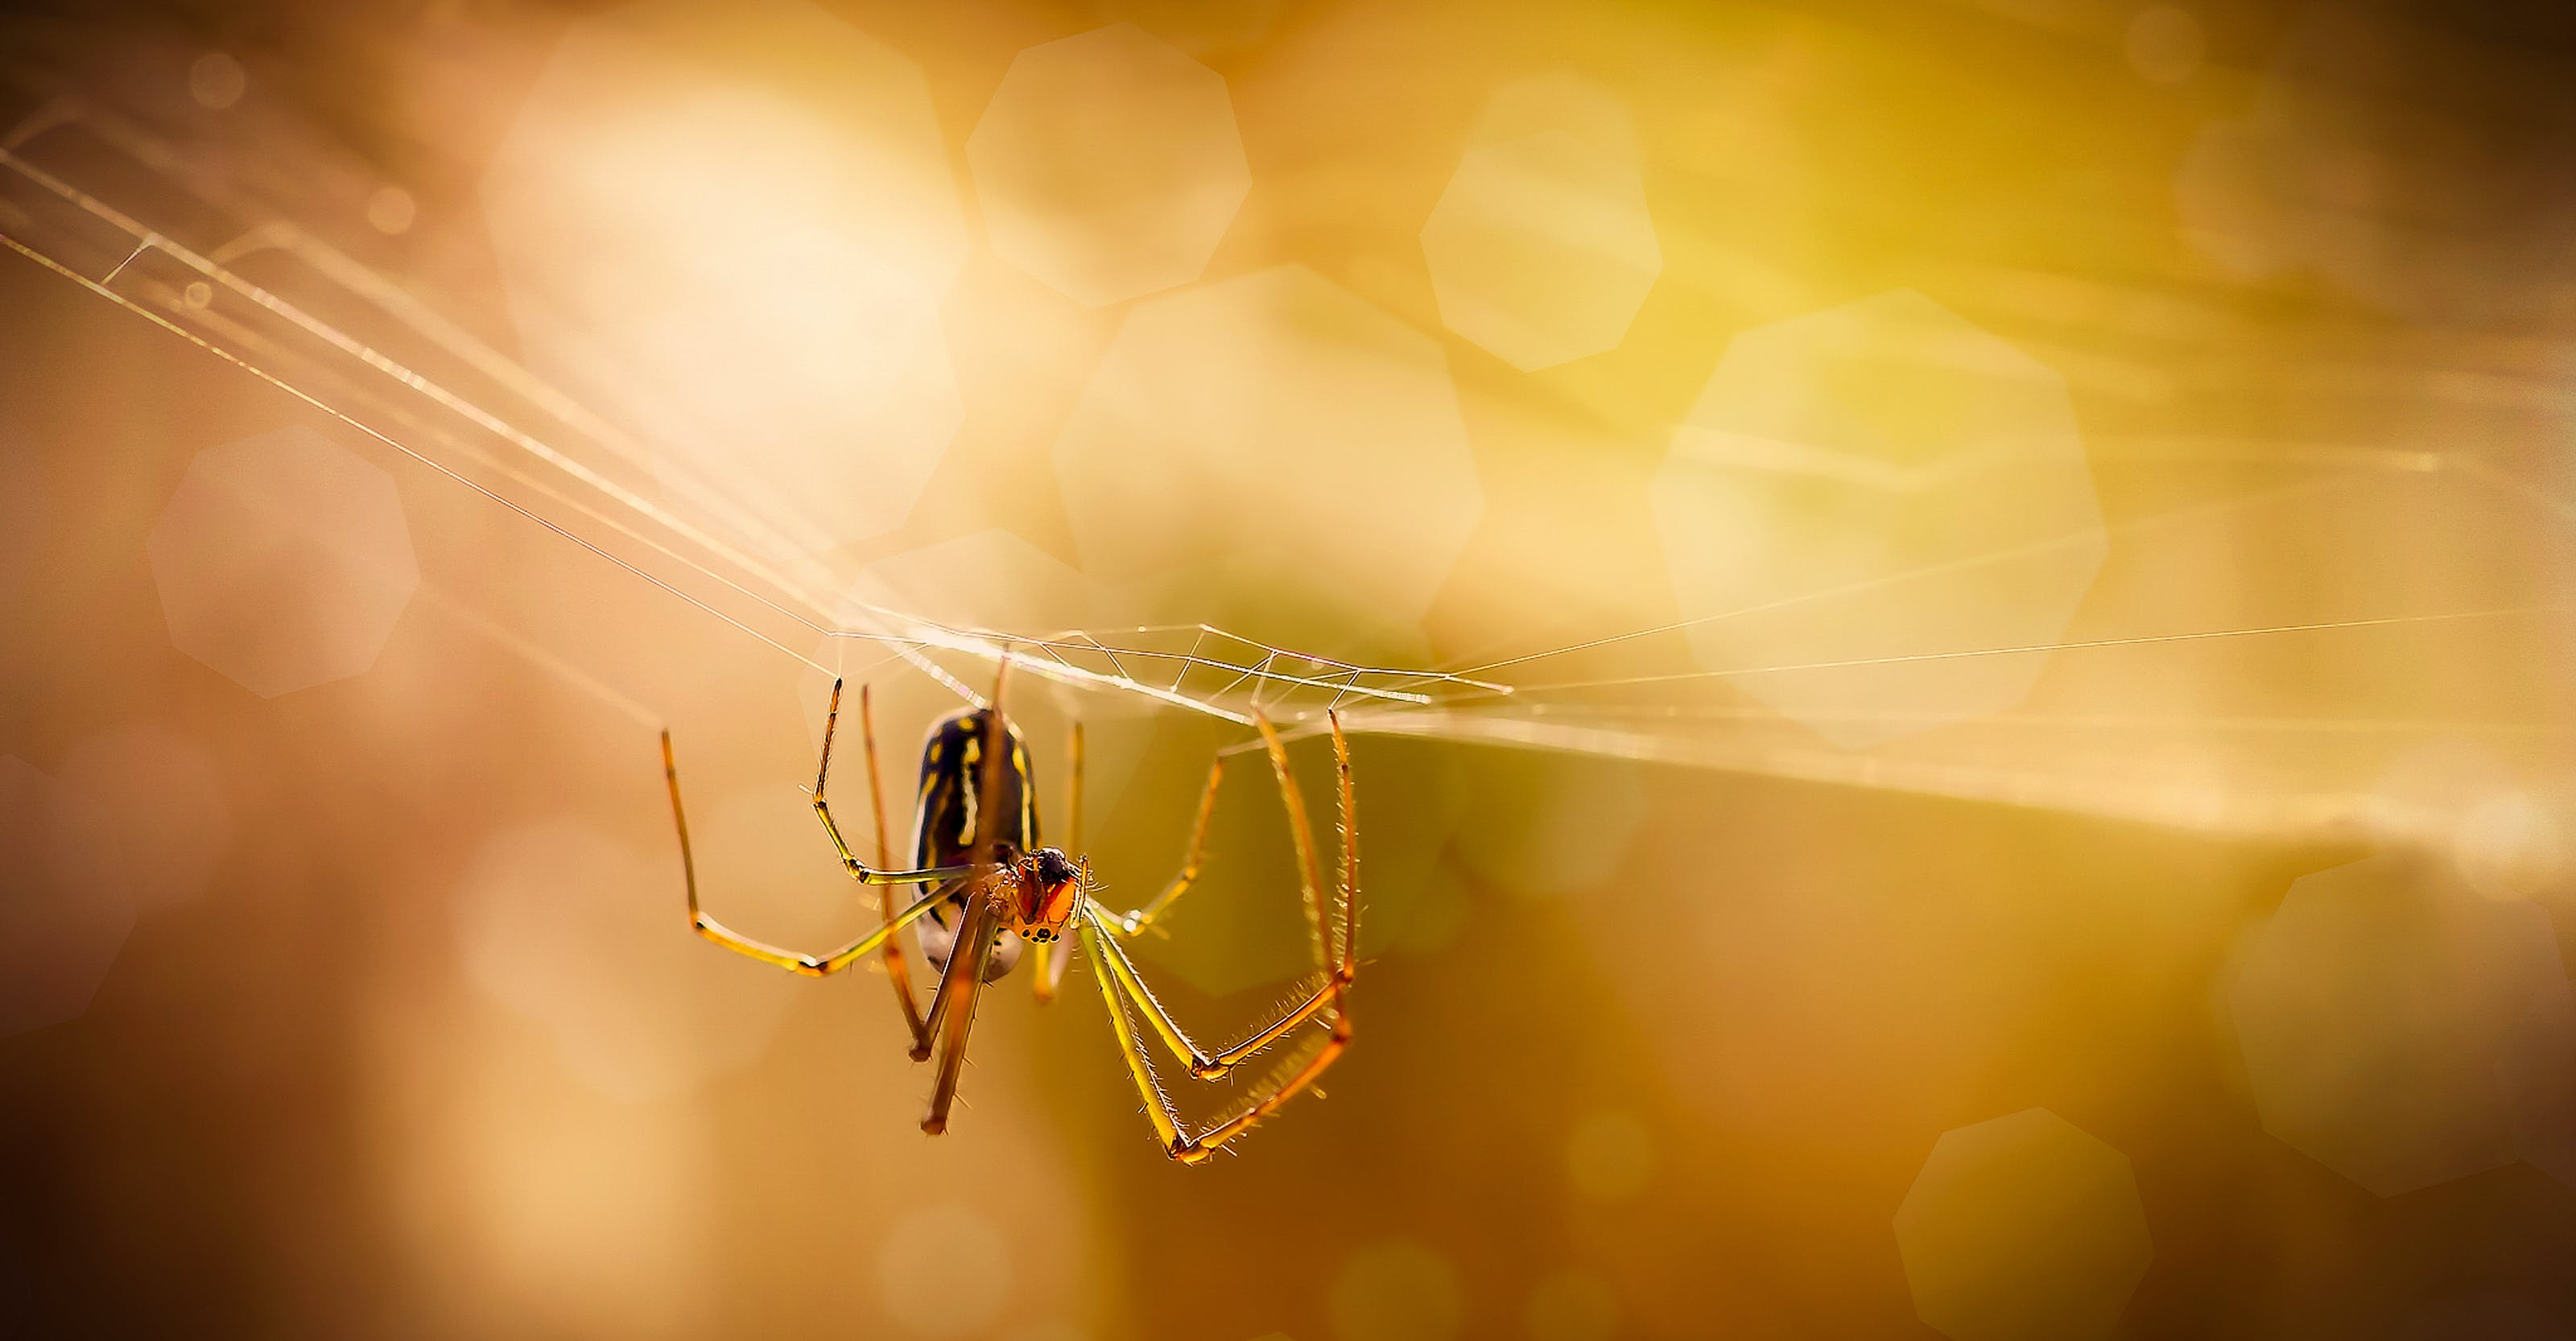 Macro Photography of Brown Spider on Web